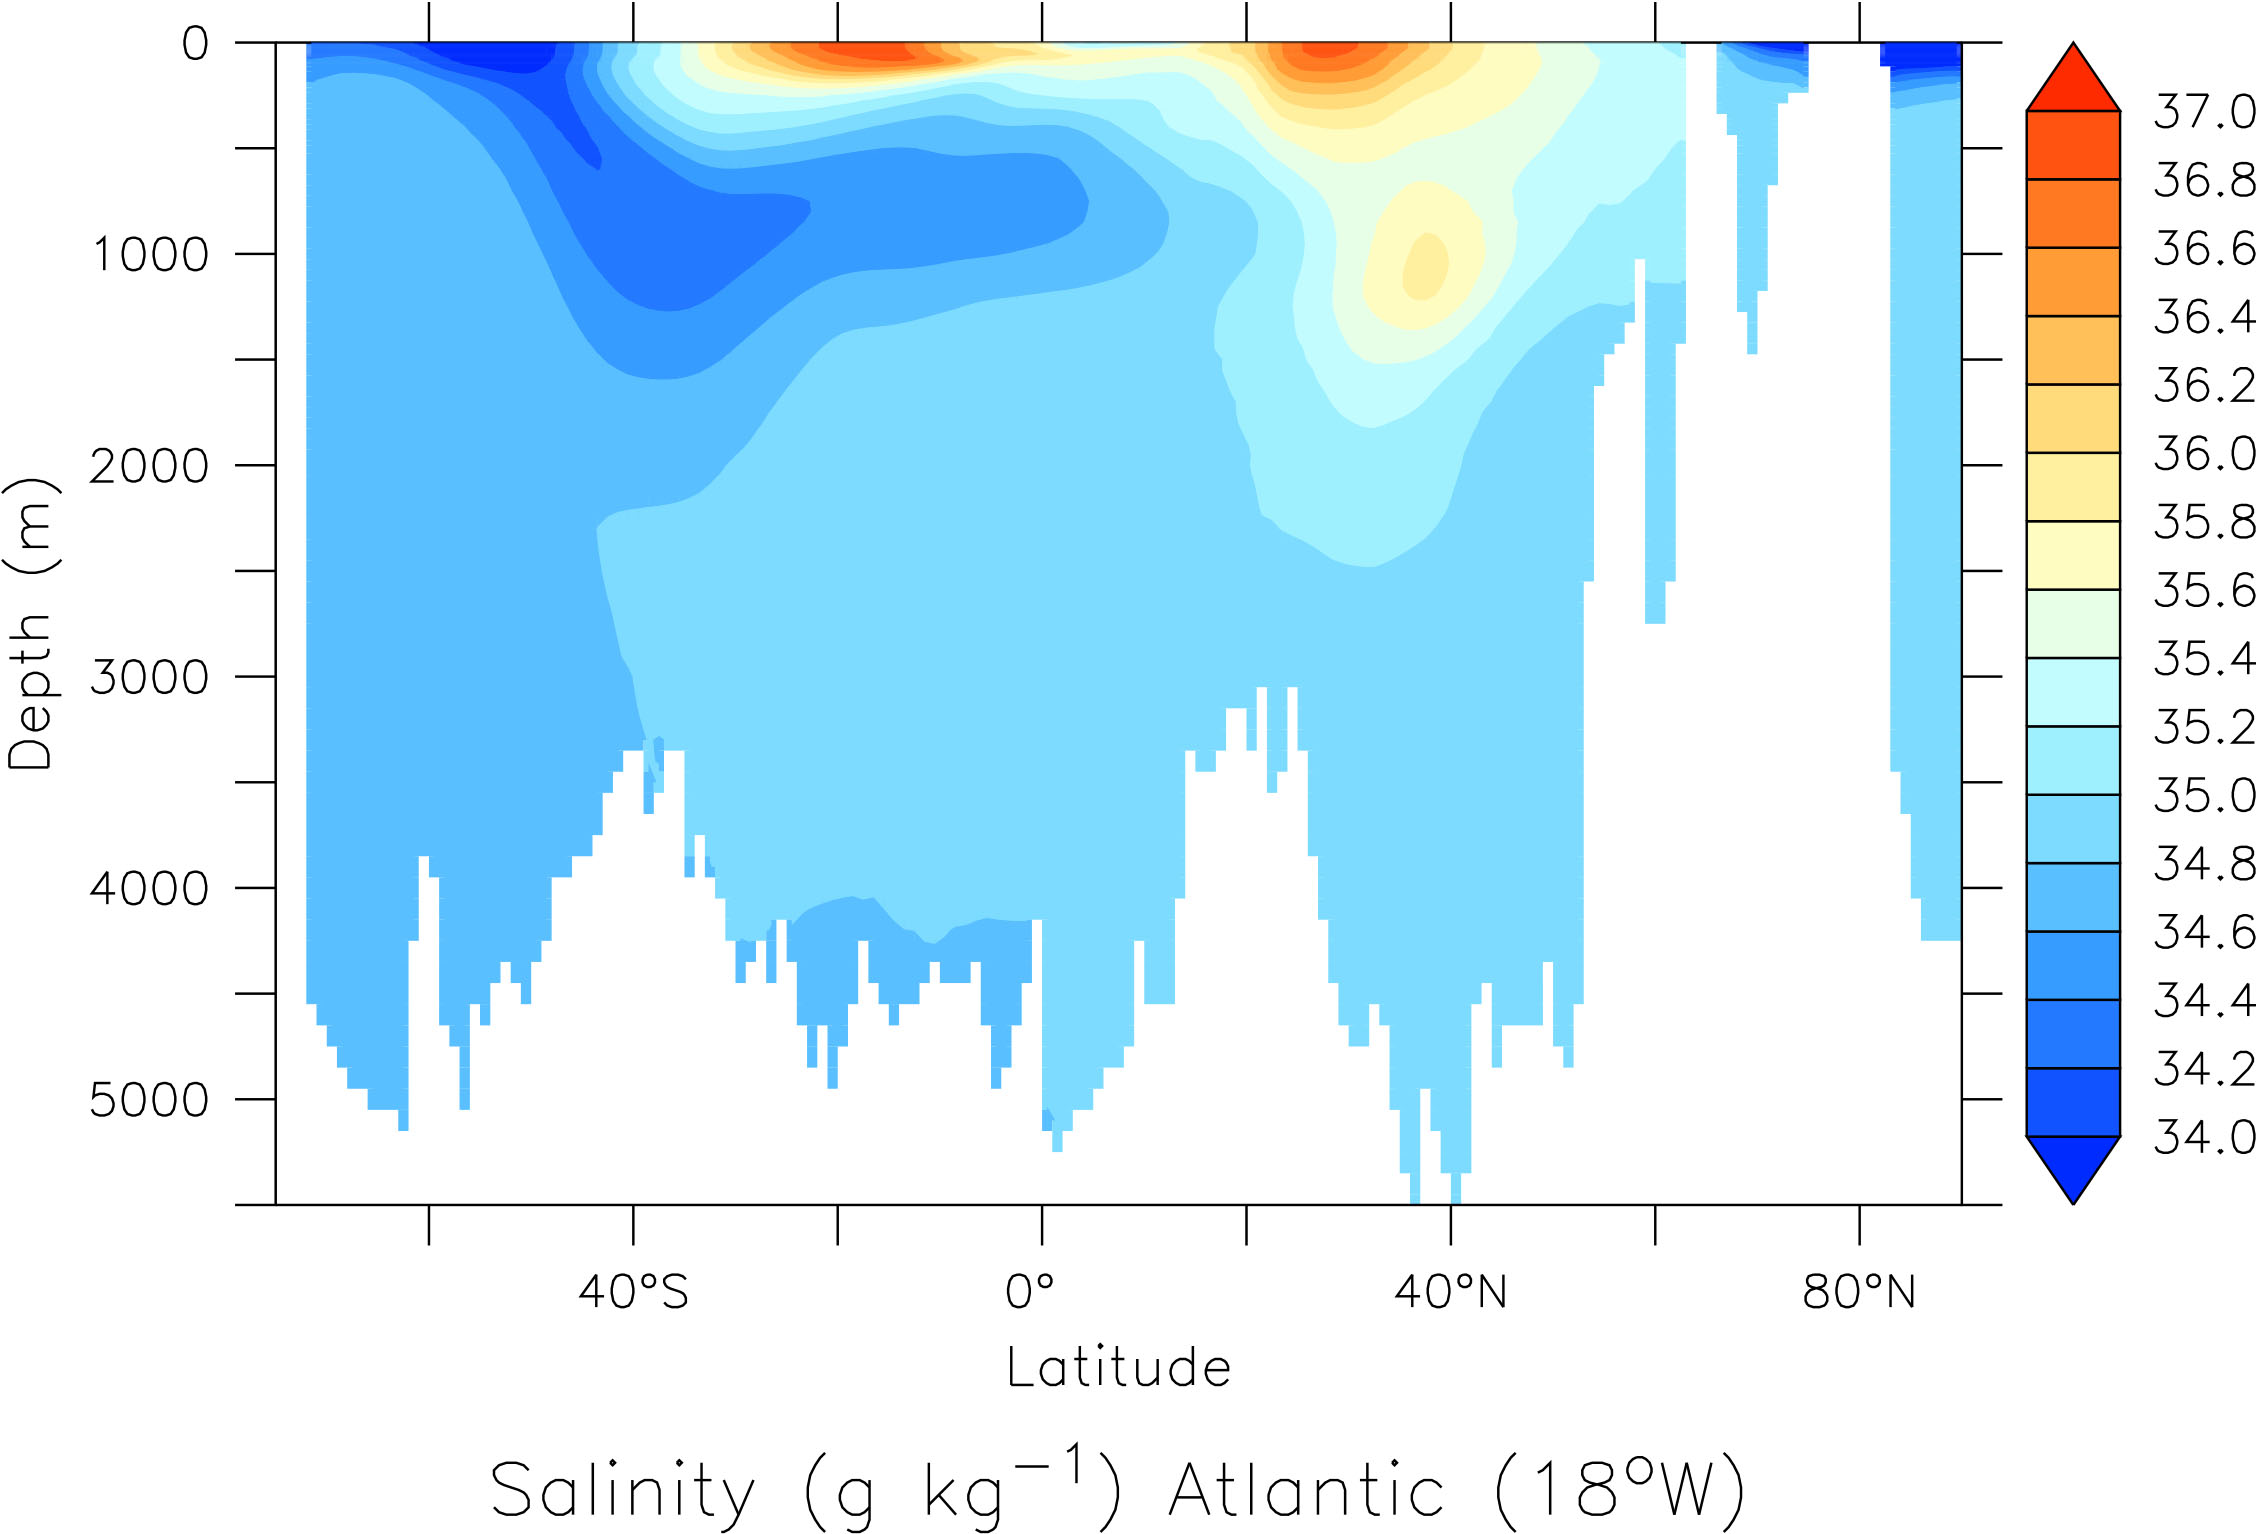 Salinity (in grams salt per kg of sea water) section through the Atlantic ocean at 18°W as a function of latitude and depth.